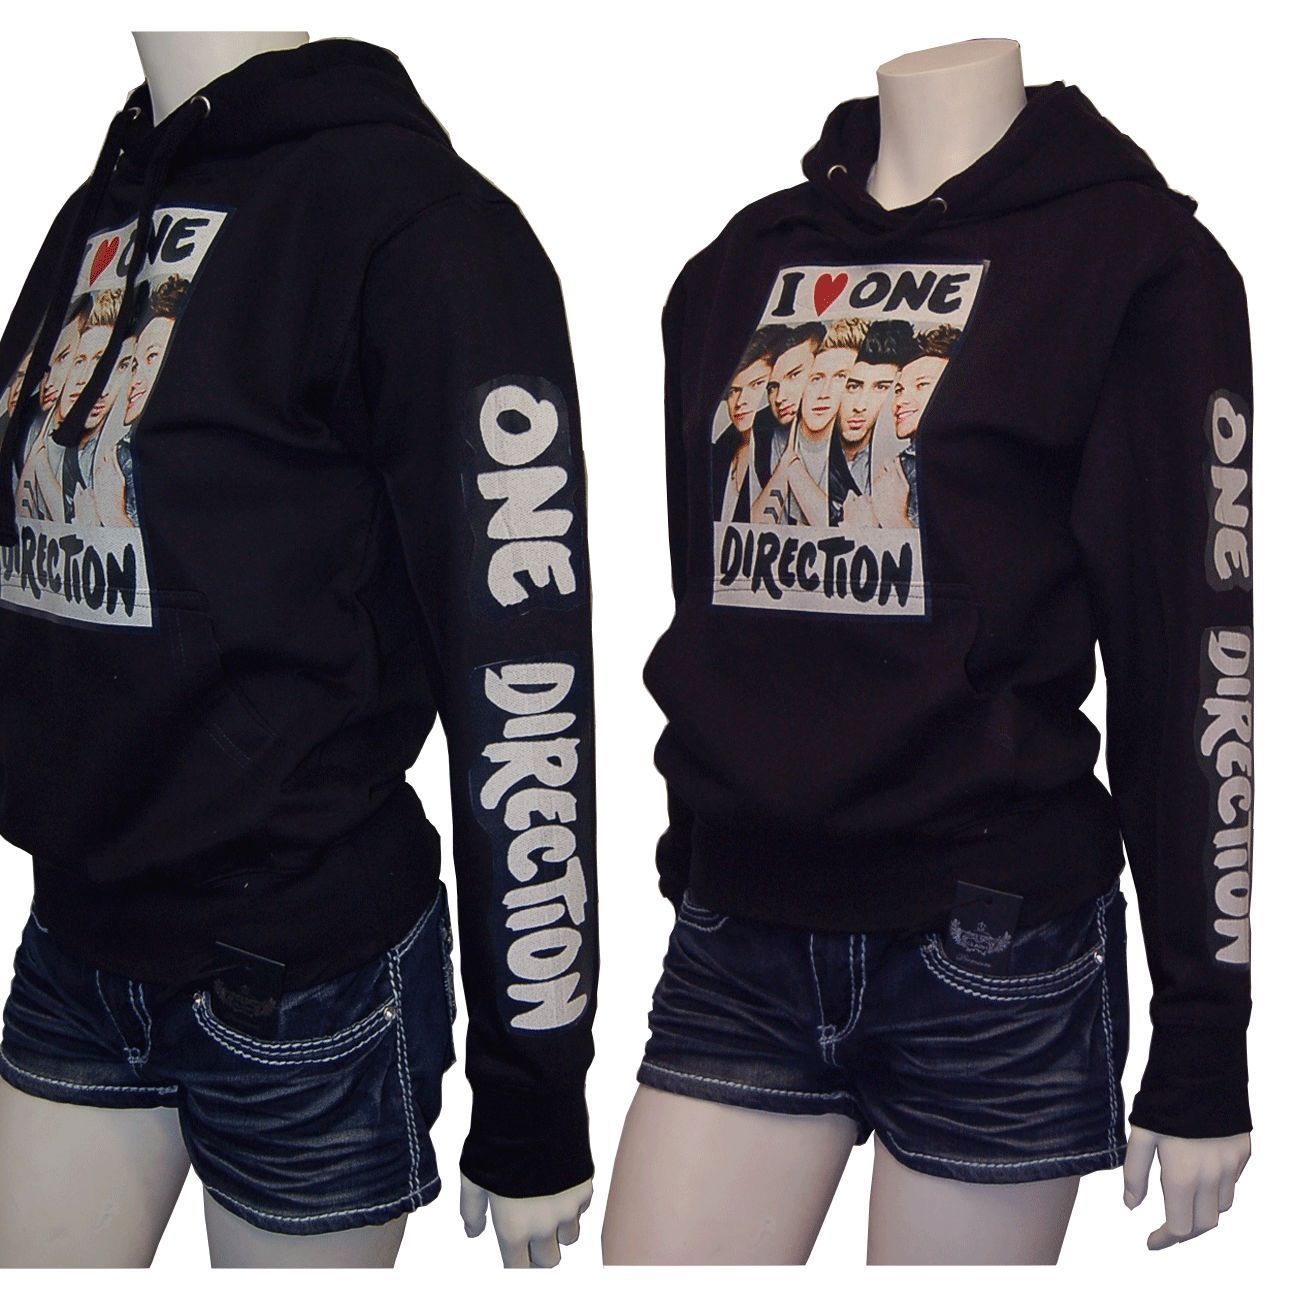 b2a0d8e0309e ONE DIRECTION 1D PVC Printed Black Pullover SweatShirt w Hoodie Size Medium